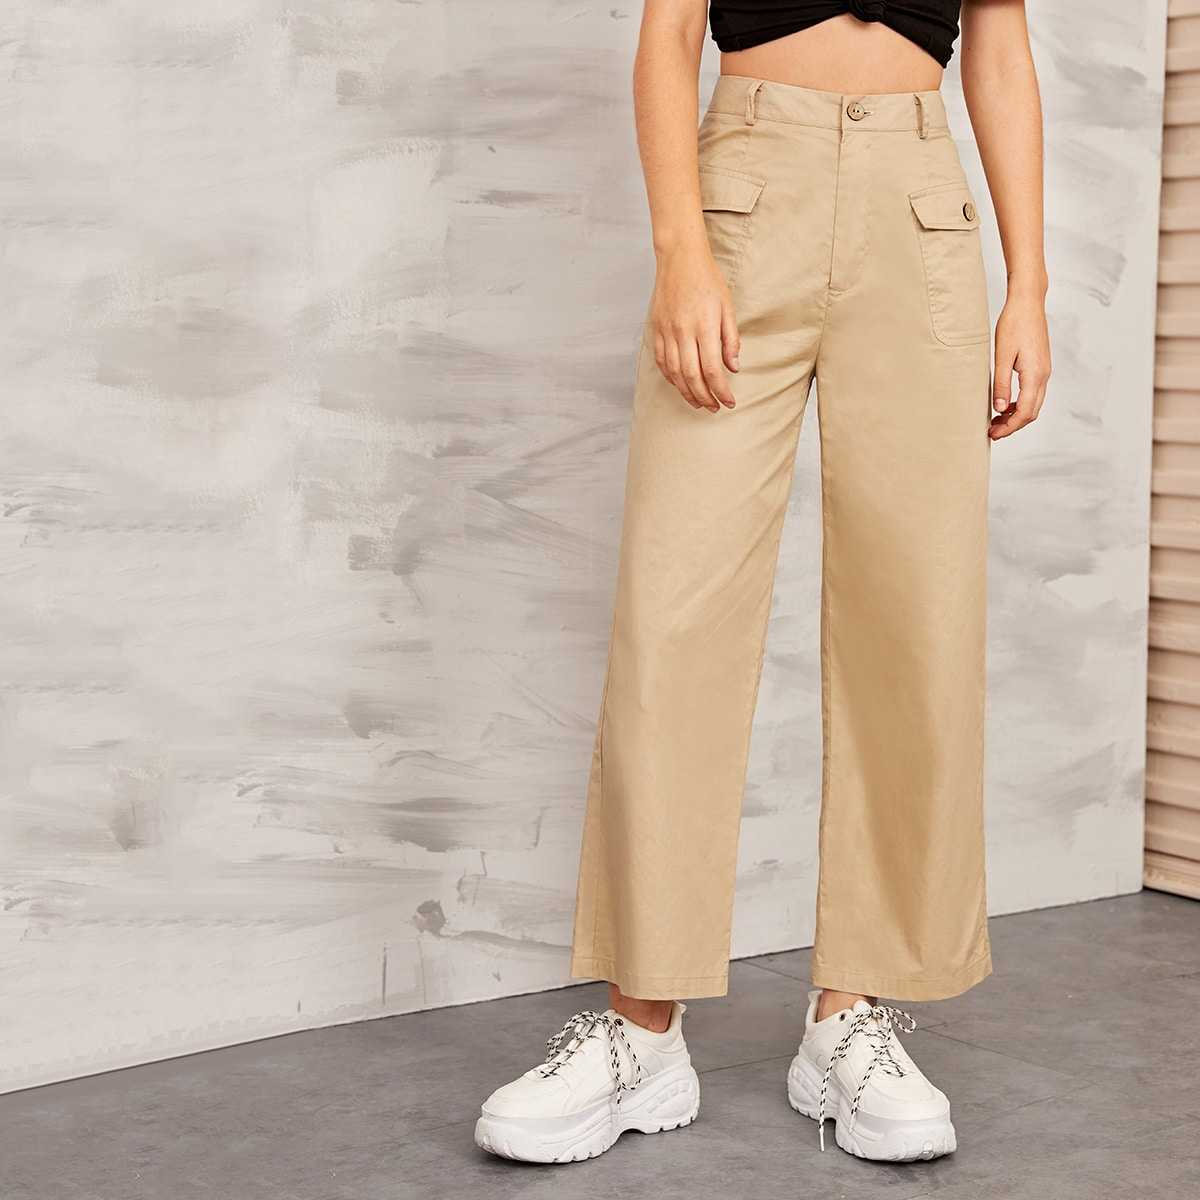 Solid Flap Pocket Front Wide Leg Cargo Pants in Khaki by ROMWE on GOOFASH